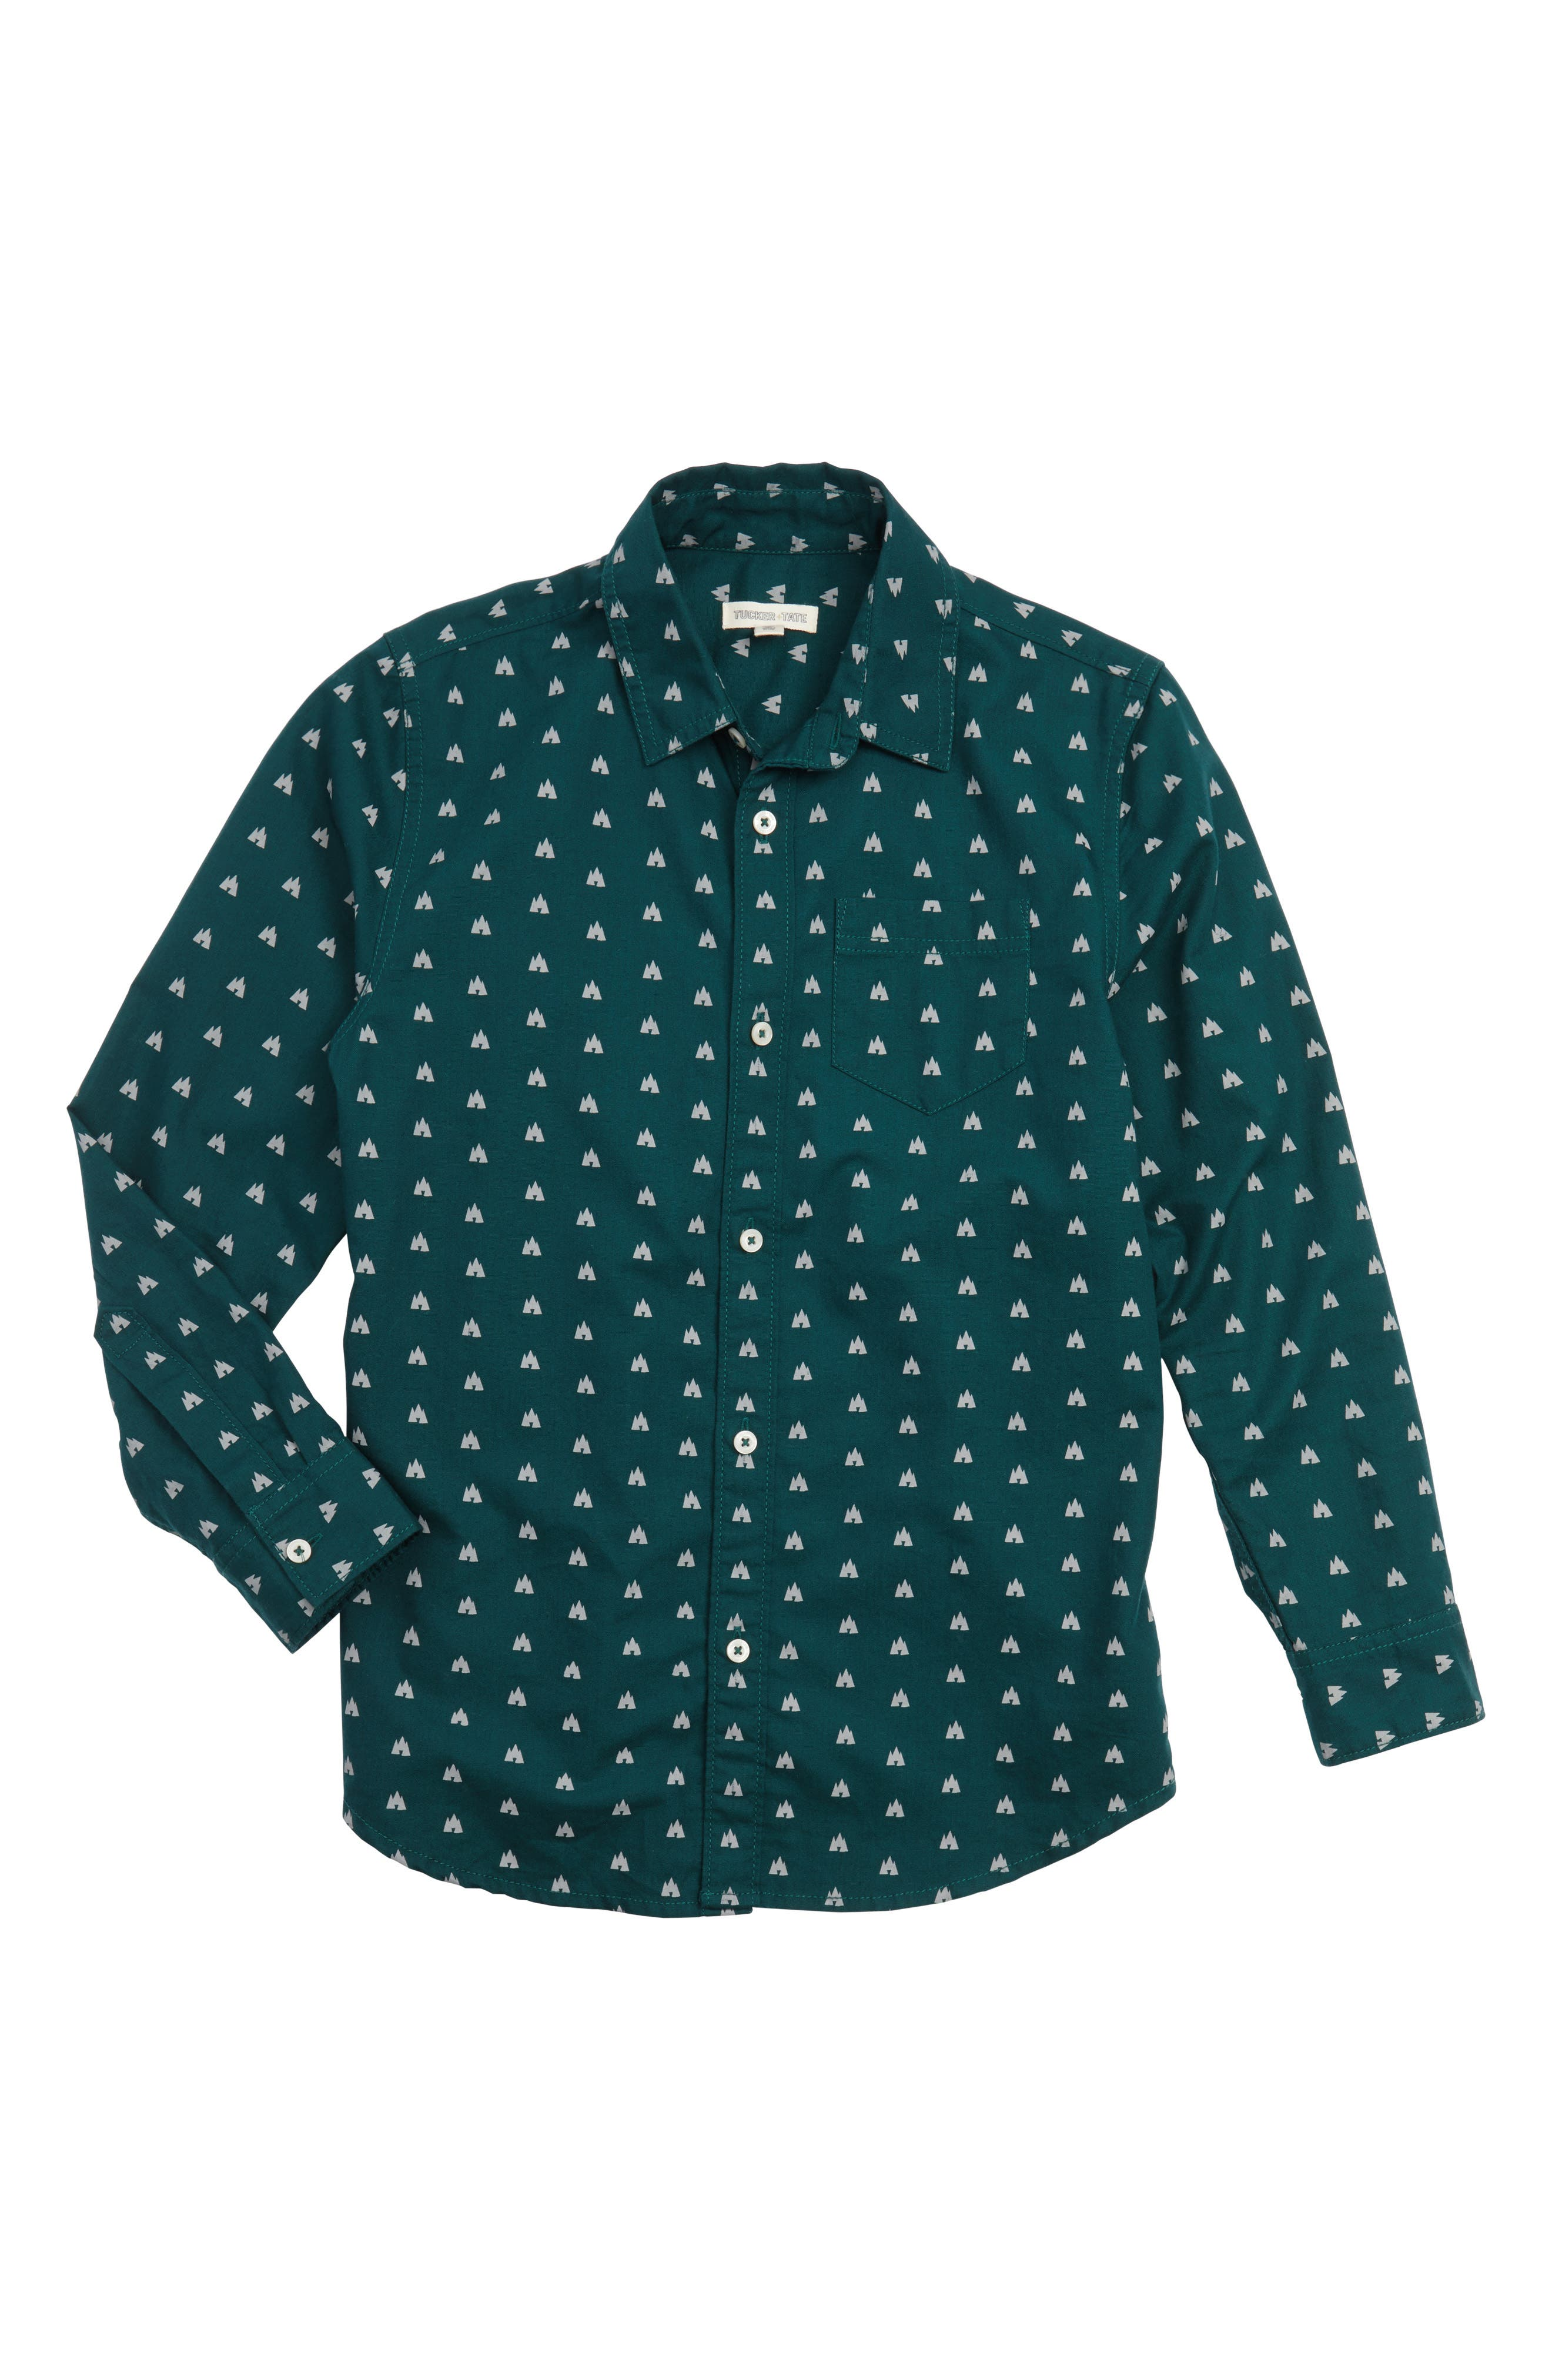 Pine Tree Sport Shirt,                         Main,                         color, Green Bug Camp Site